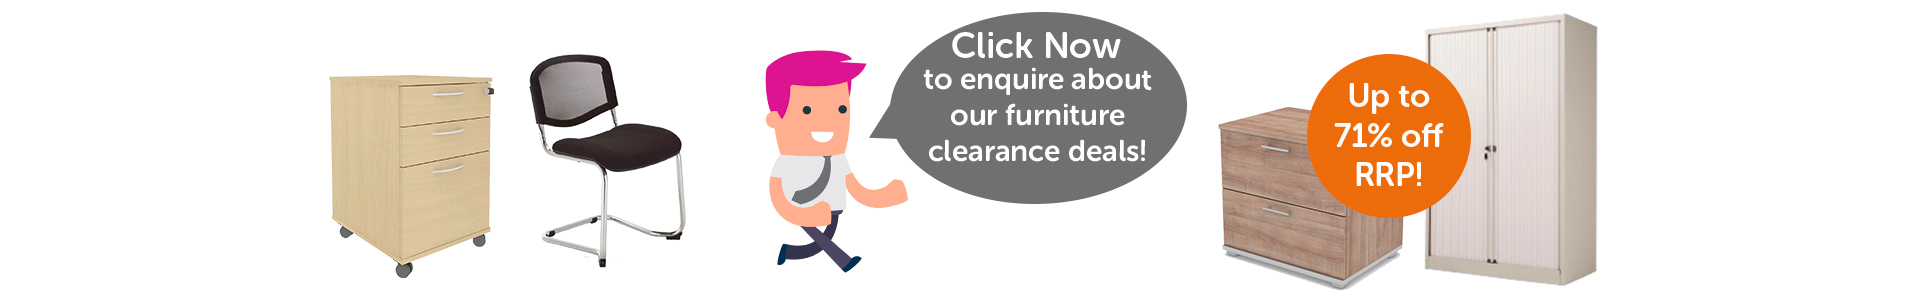 Furniture clearance items